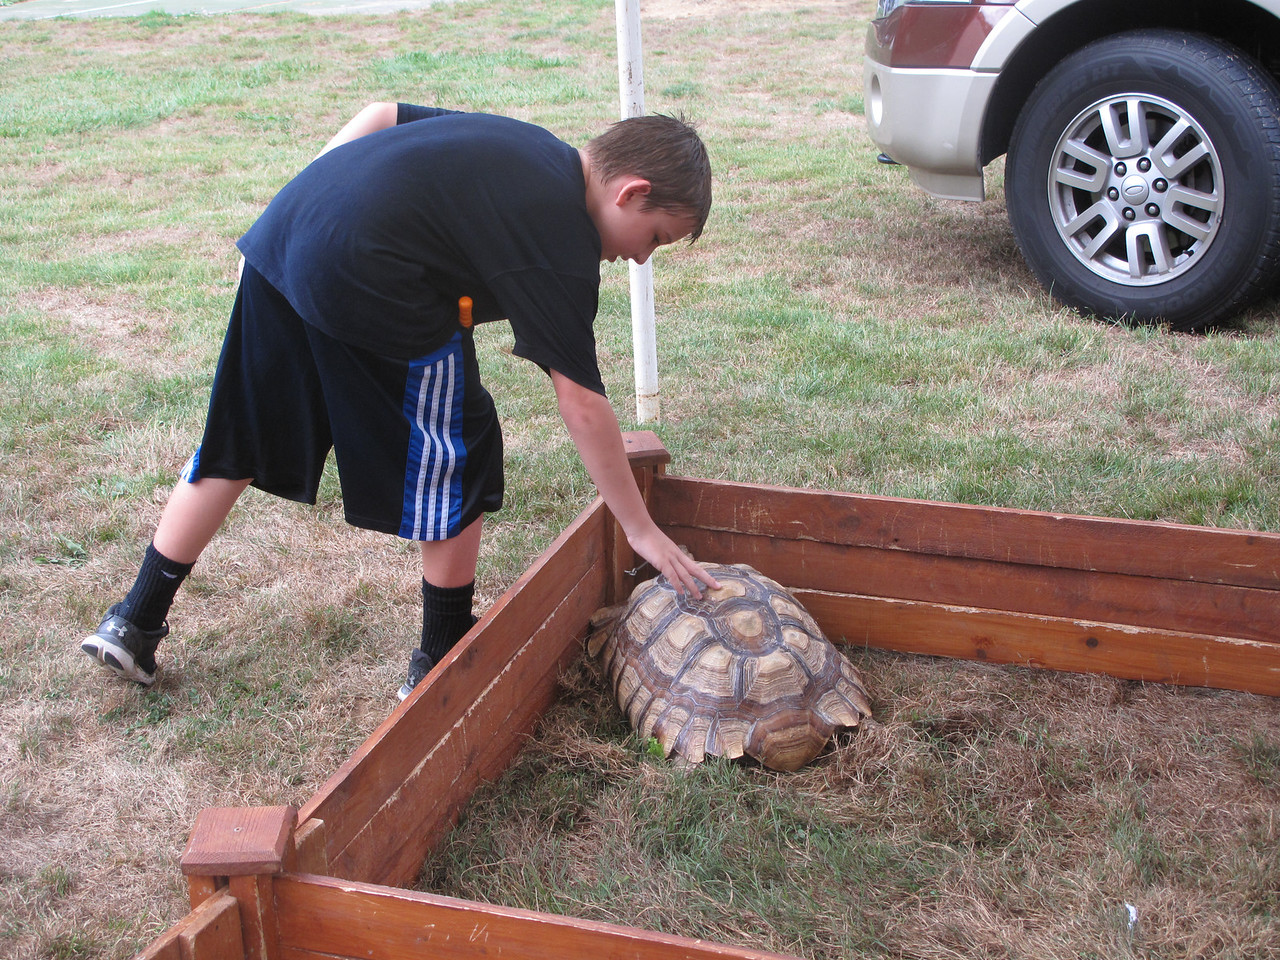 ELIZABETH DOBBINS / GAZETTE Spencer Marinuzzi, 8, of Seville pets a roughly ten year old sulcata tortoise brought to the Village of Seville Bicentennial Celebration by Our Zoo to You, a traveling petting zoo.